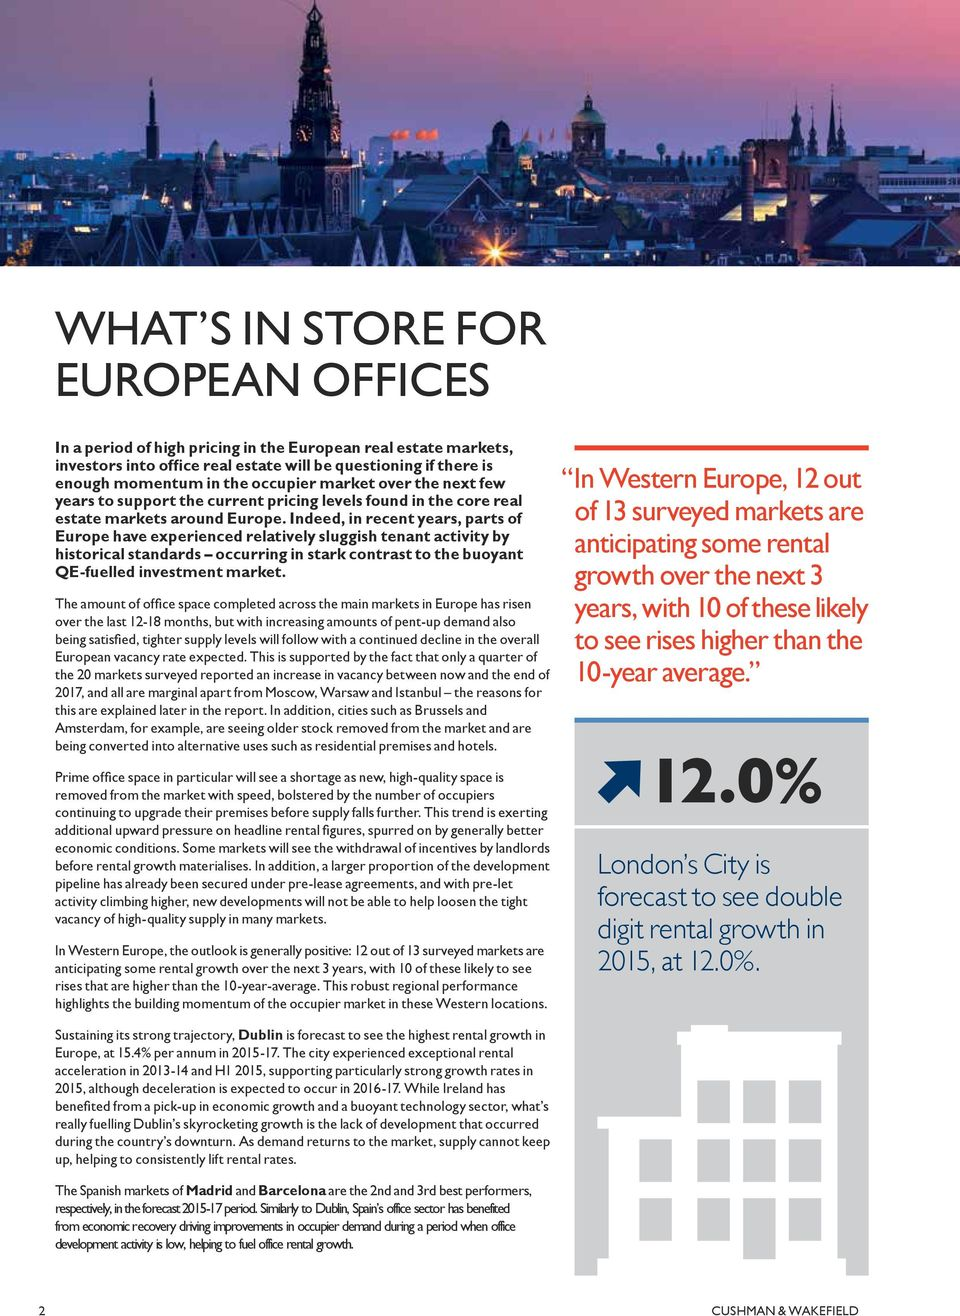 Indeed, in recent years, parts of Europe have experienced relatively sluggish tenant activity by historical standards occurring in stark contrast to the buoyant QE-fuelled investment market.